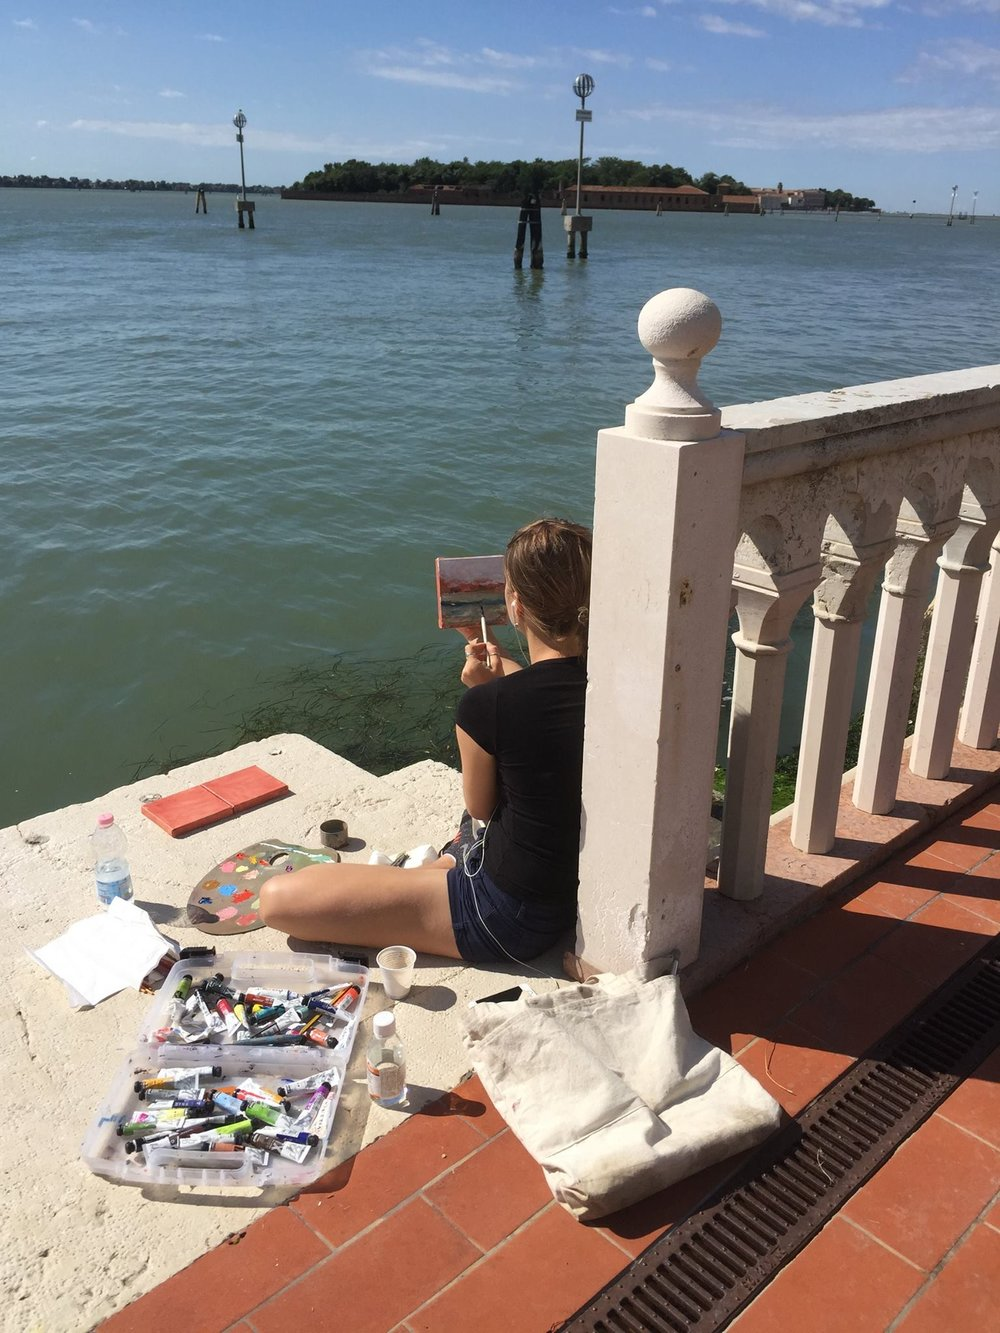 Samantha Busiello painting by the canal.